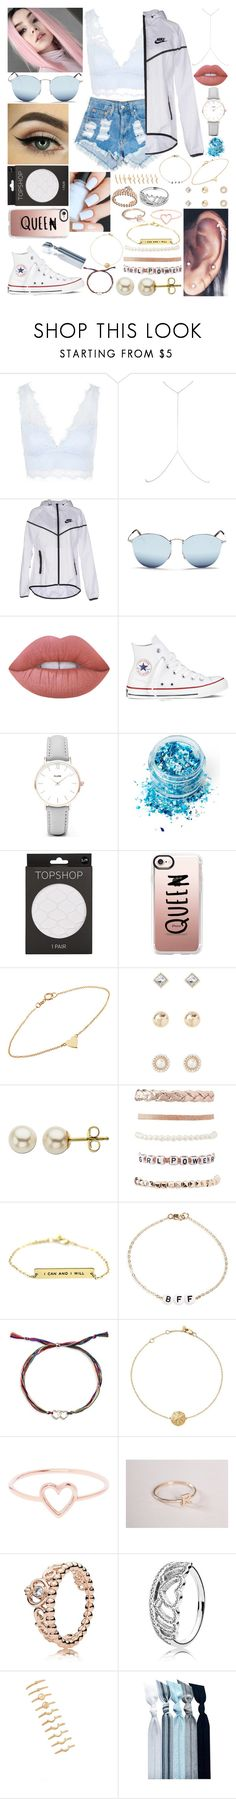 """""""I'm stronger than yesterday"""" by xo-arissa-xo ❤ liked on Polyvore featuring Topshop, River Island, NIKE, Ray-Ban, Lime Crime, Converse, CLUSE, In Your Dreams, Casetify and Jennifer Meyer Jewelry"""